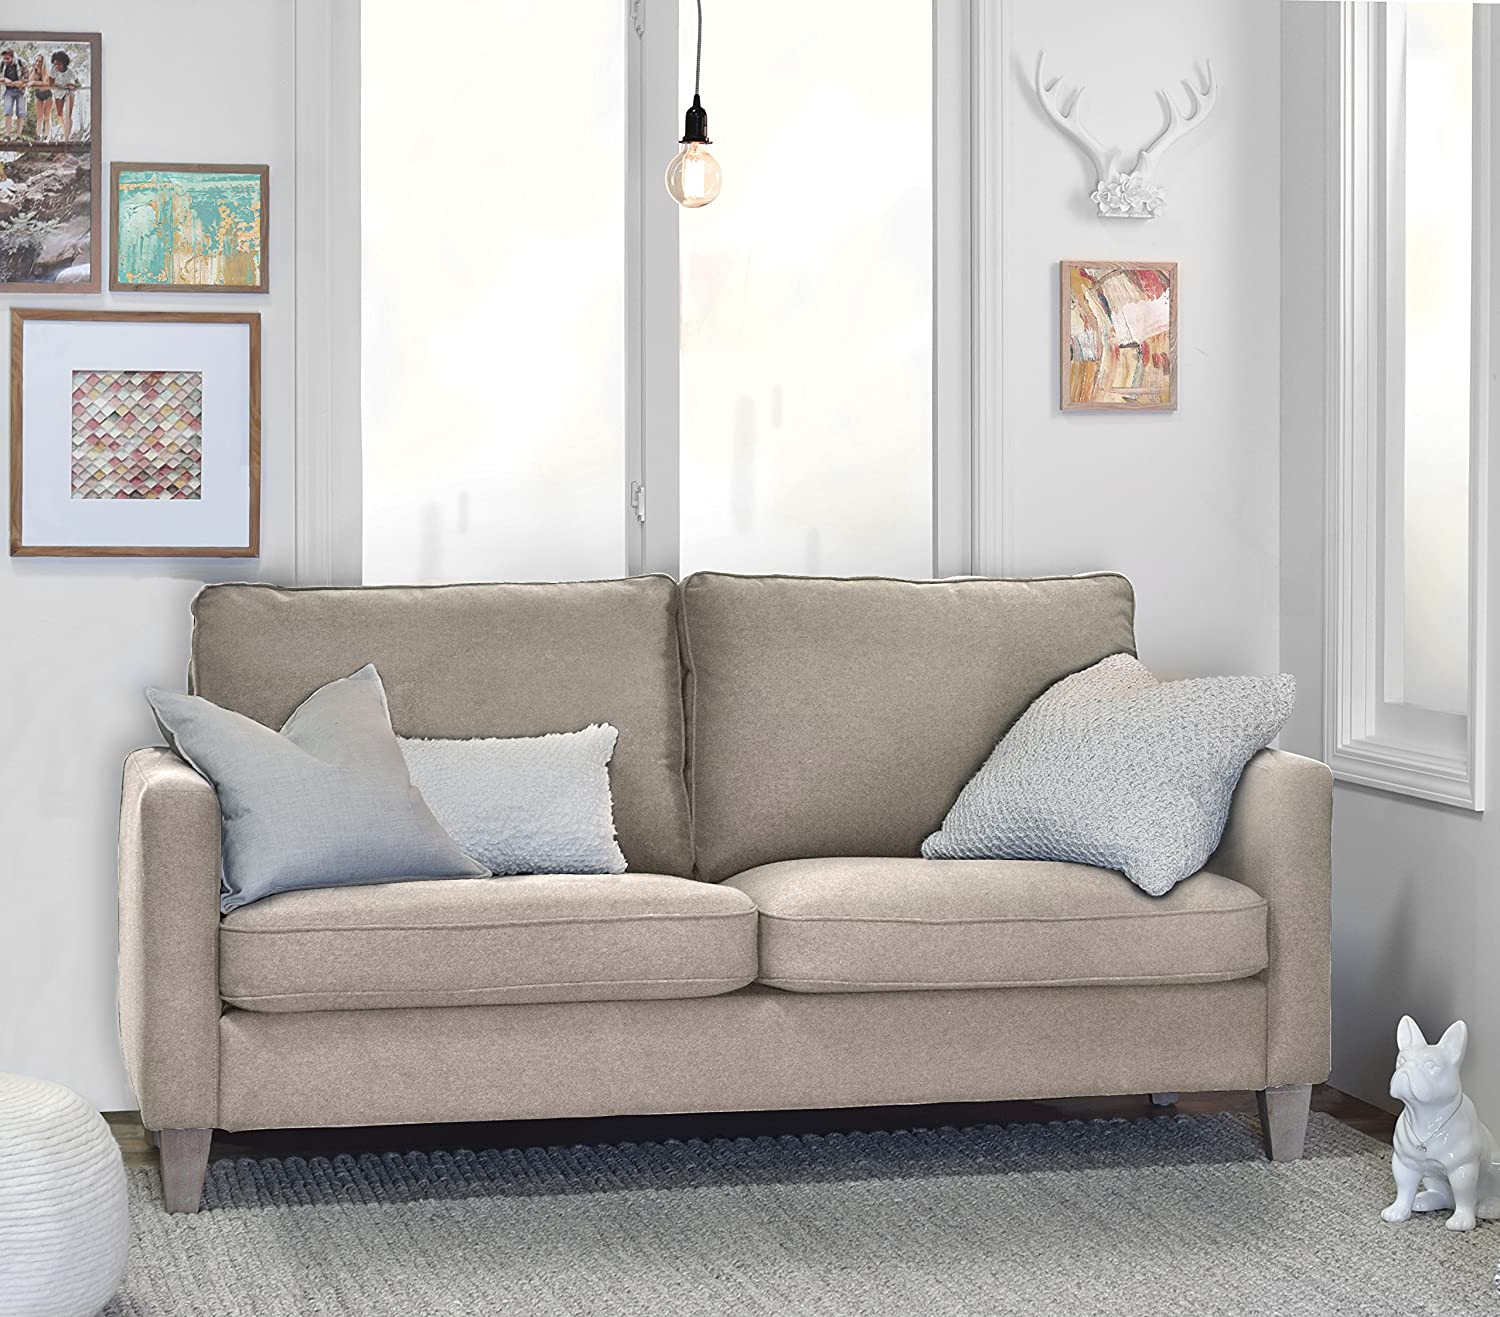 Elle Decor Porter Sofa - Beige